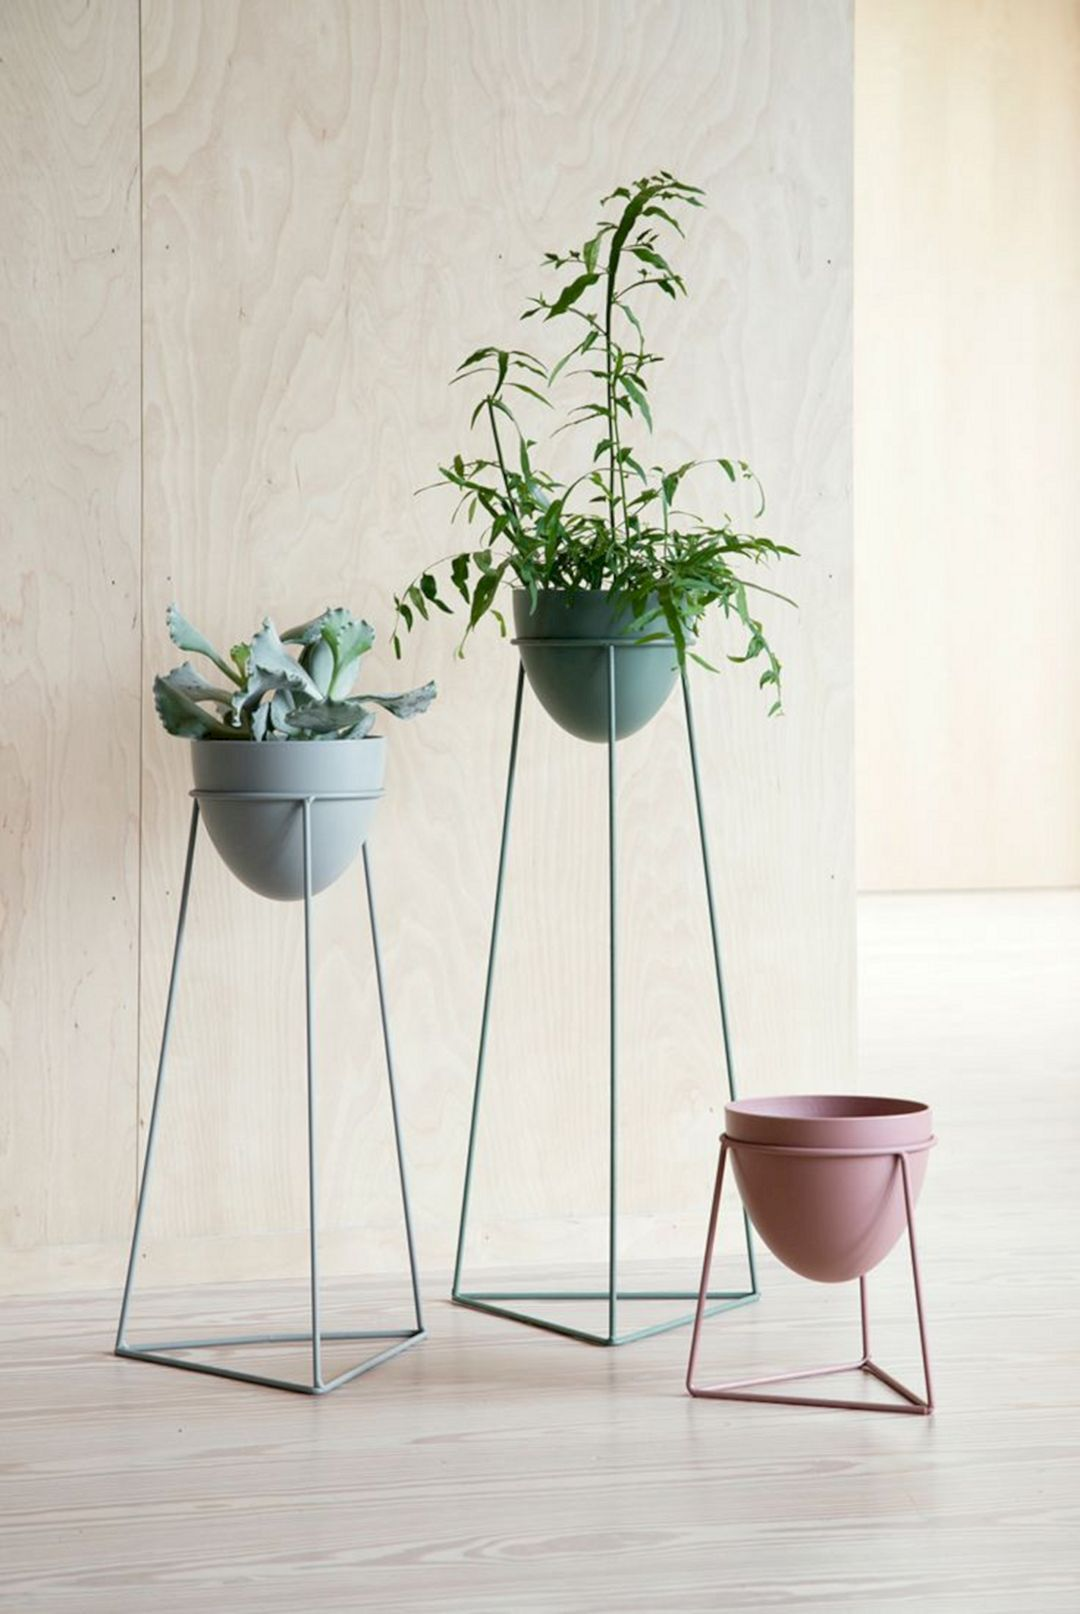 12 Best DIY Indoor Plant Stands Ideas For Fresh Home ... on House Plant Stand Ideas  id=66345